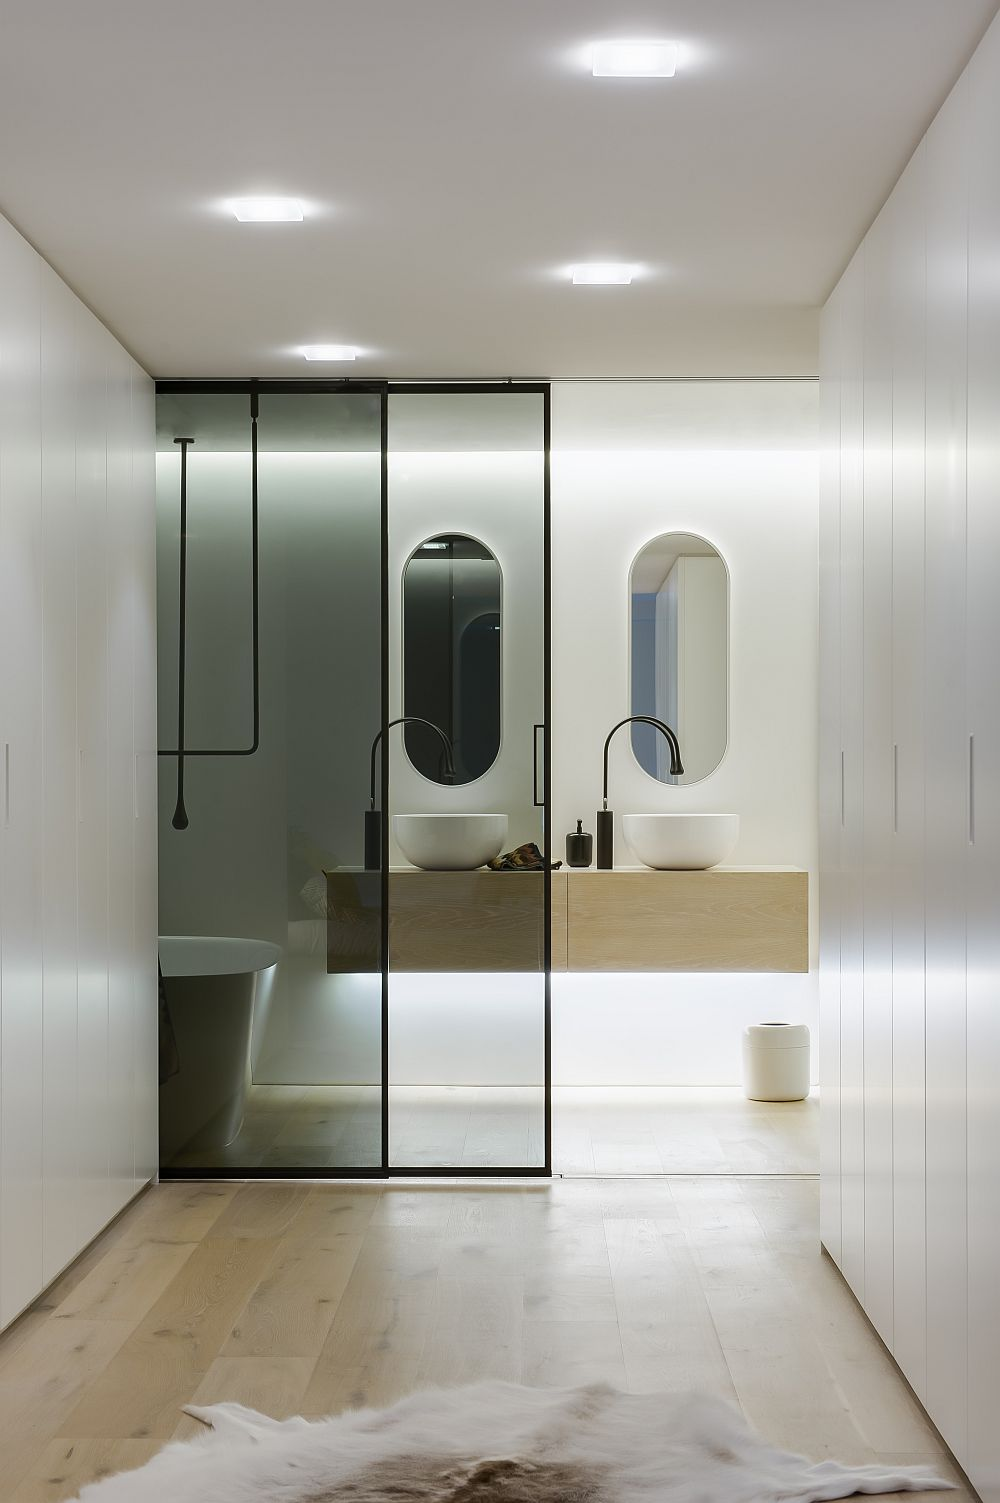 Transparent Valeria sliding door system by Rimadesio